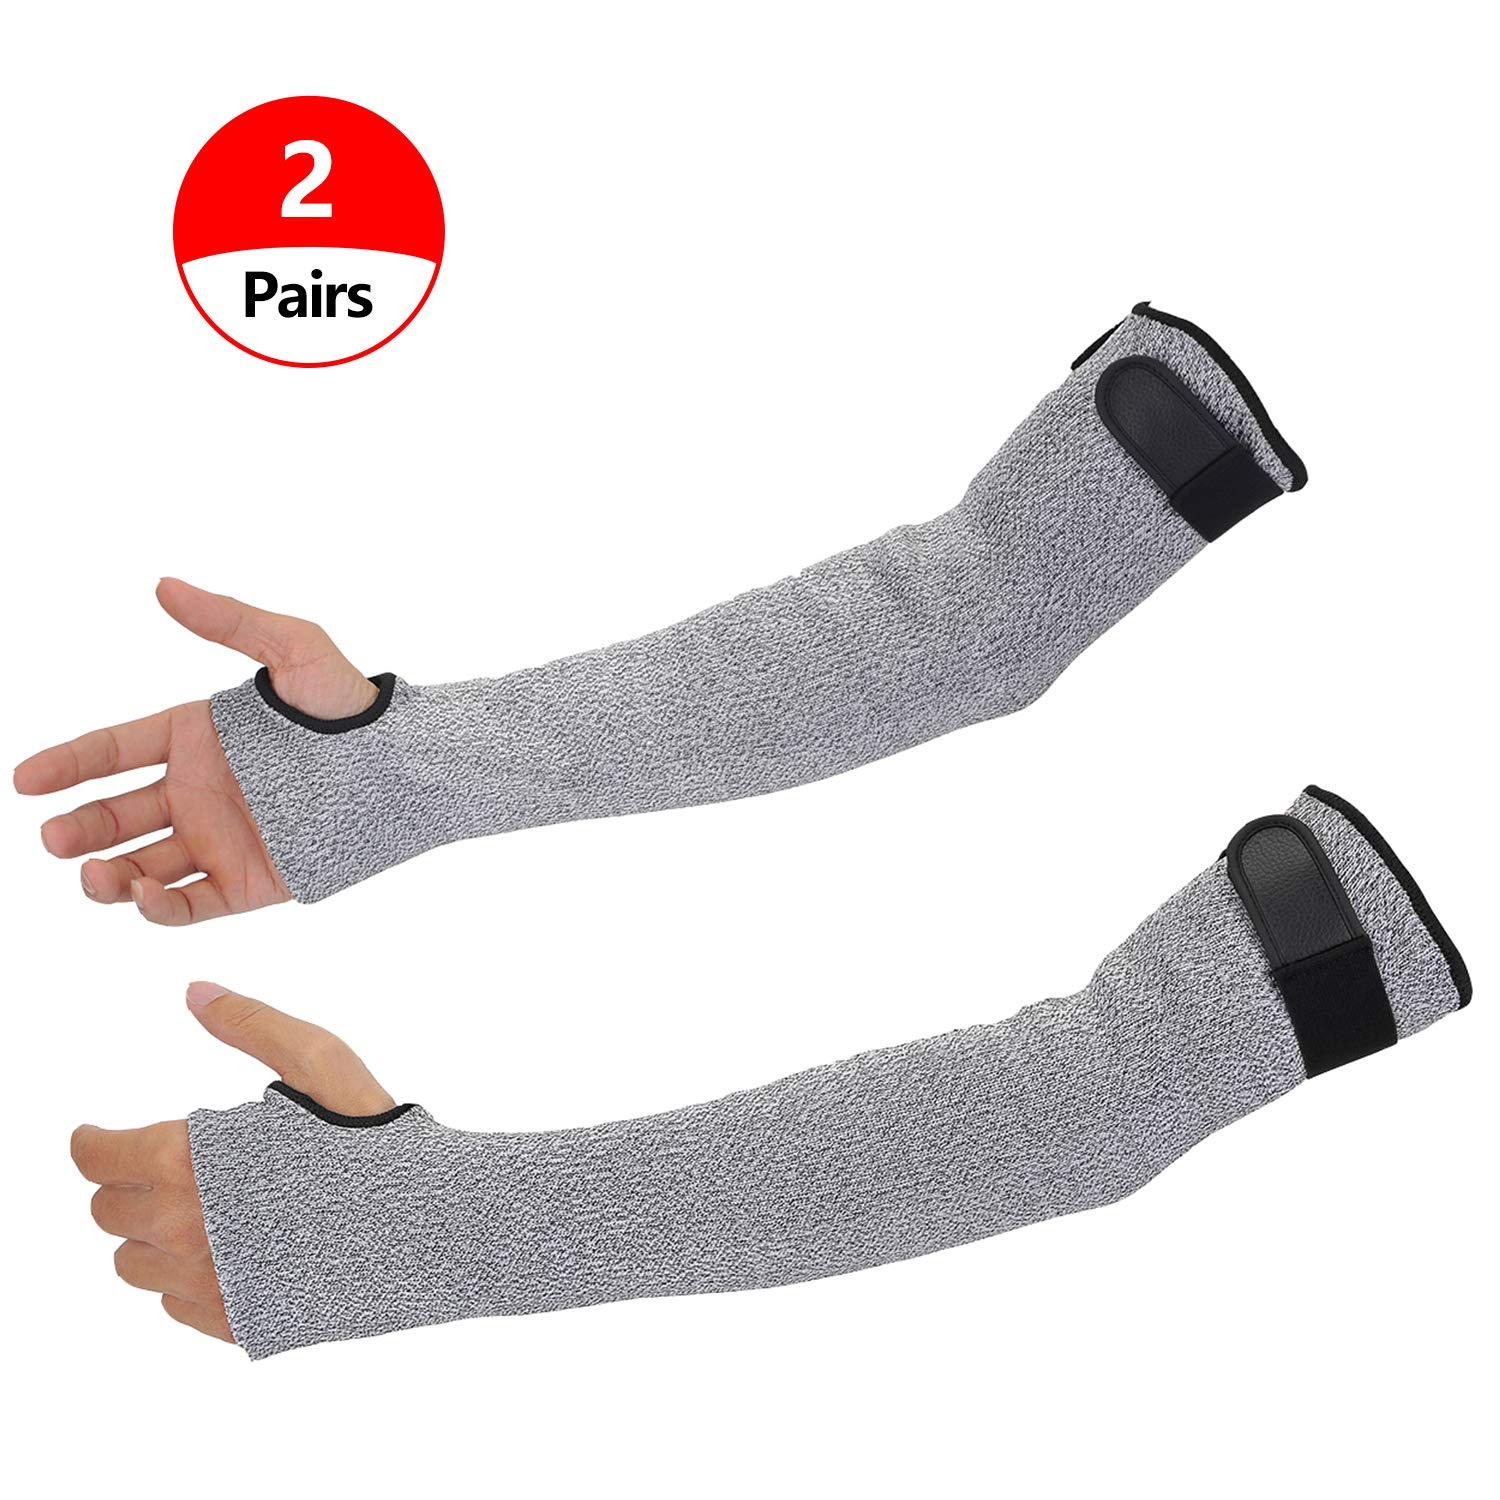 Cut Resistant Arm Sleeves with Thumb Hole, Double Ply Protective Sleeves for Arms with Level 5 Protection, Mechanics Sleeves Soft Breathable Anti Abrasion with 18 inch Long Idea for Gardening Glass by ReHaffe